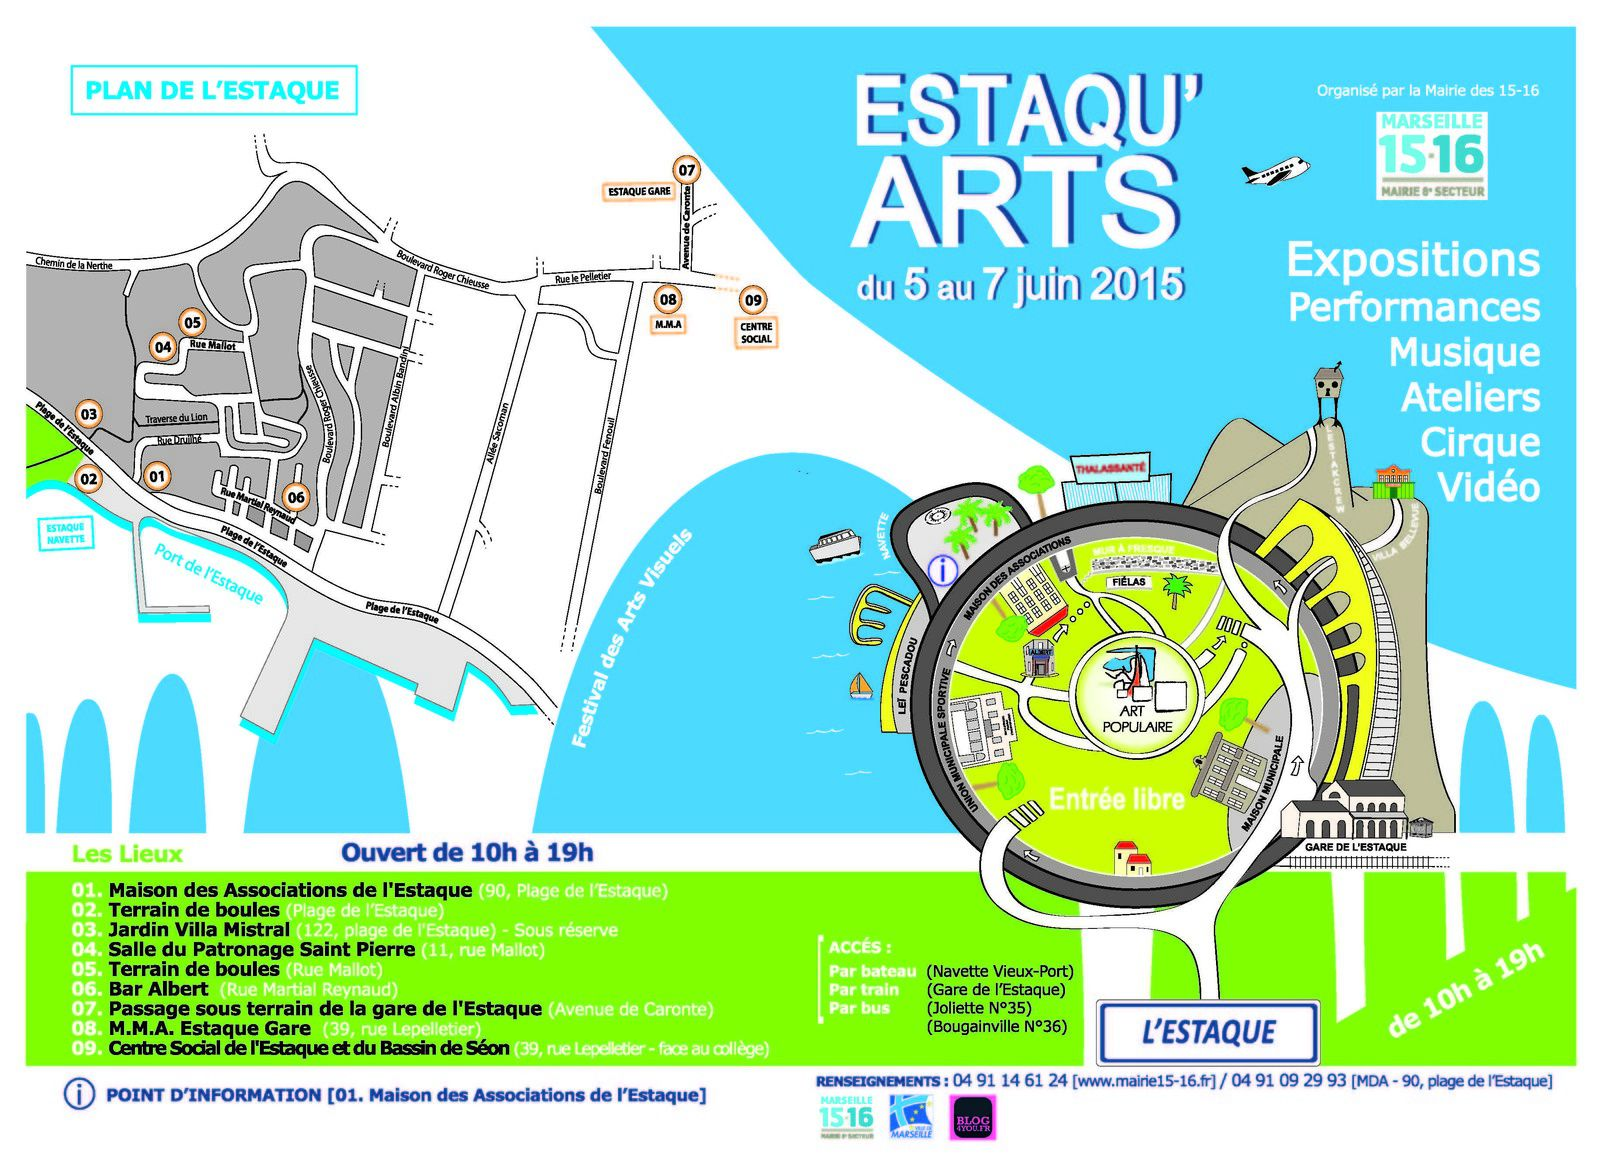 Estaqu'art 2015 - Teaser de la manifestation